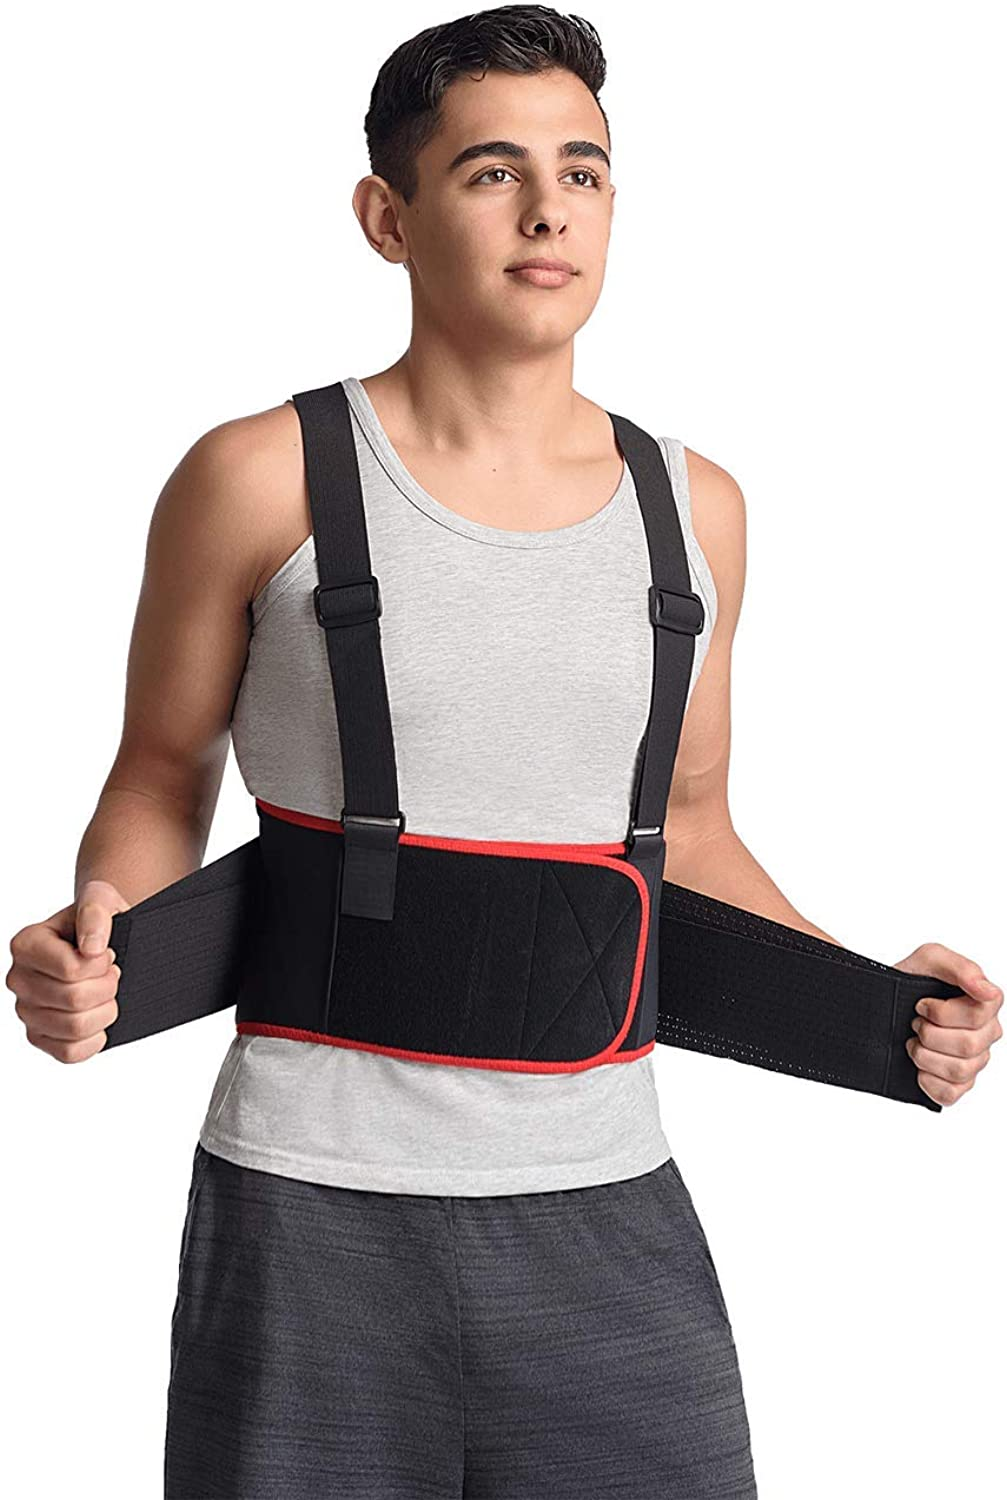 MAXAR Breathable Lower Back Support with Detachable Suspenders IBS3000  Black Medium